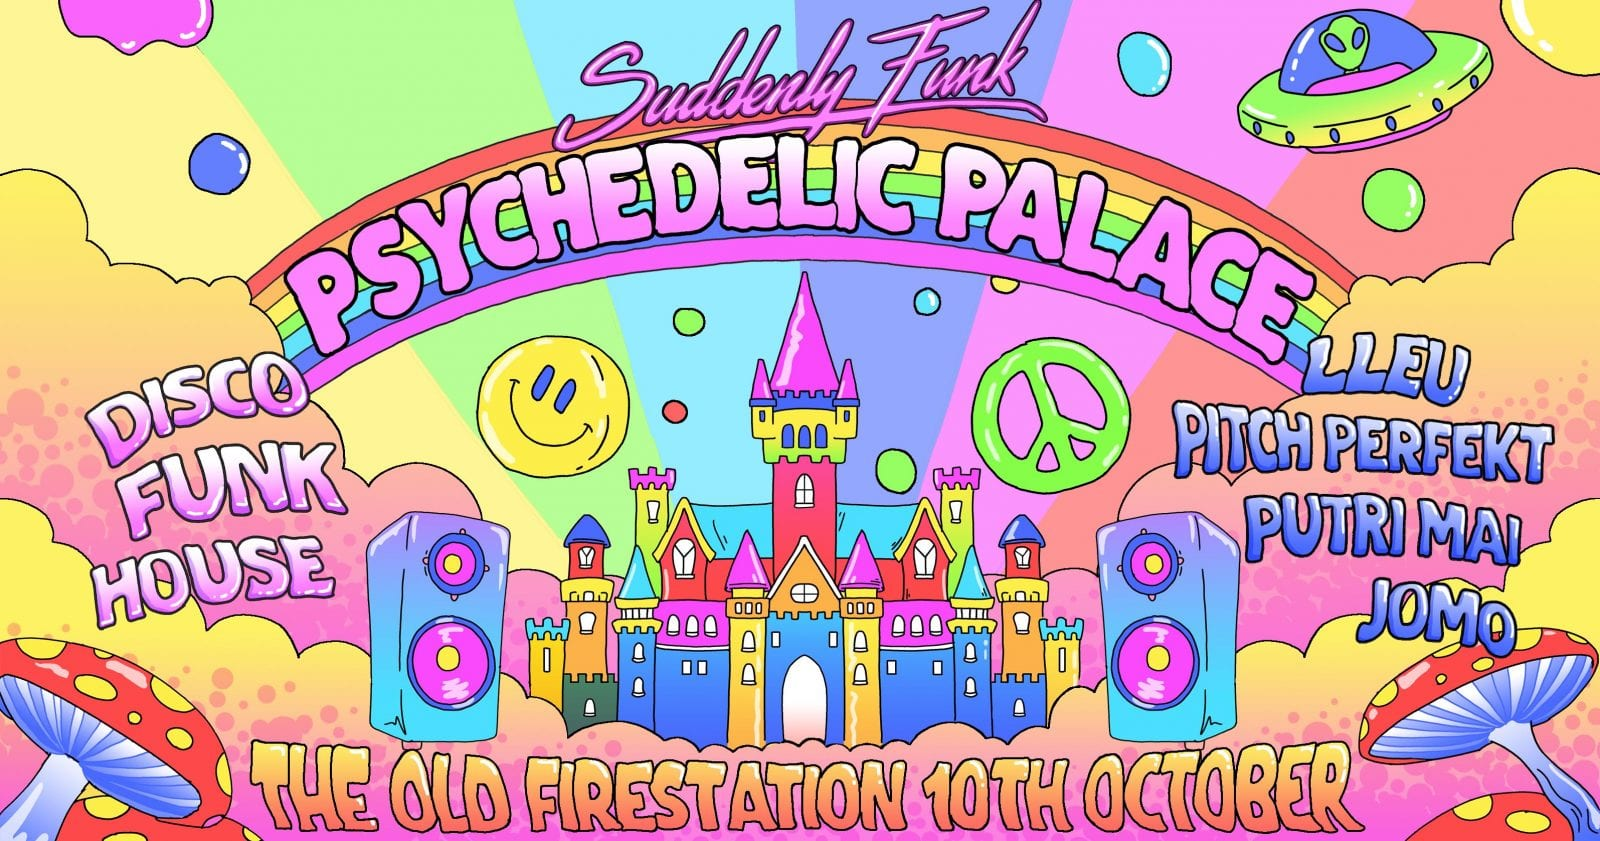 Suddenly Funk: Psychedelic Palace: Thursday 10th October: A-List Ticket